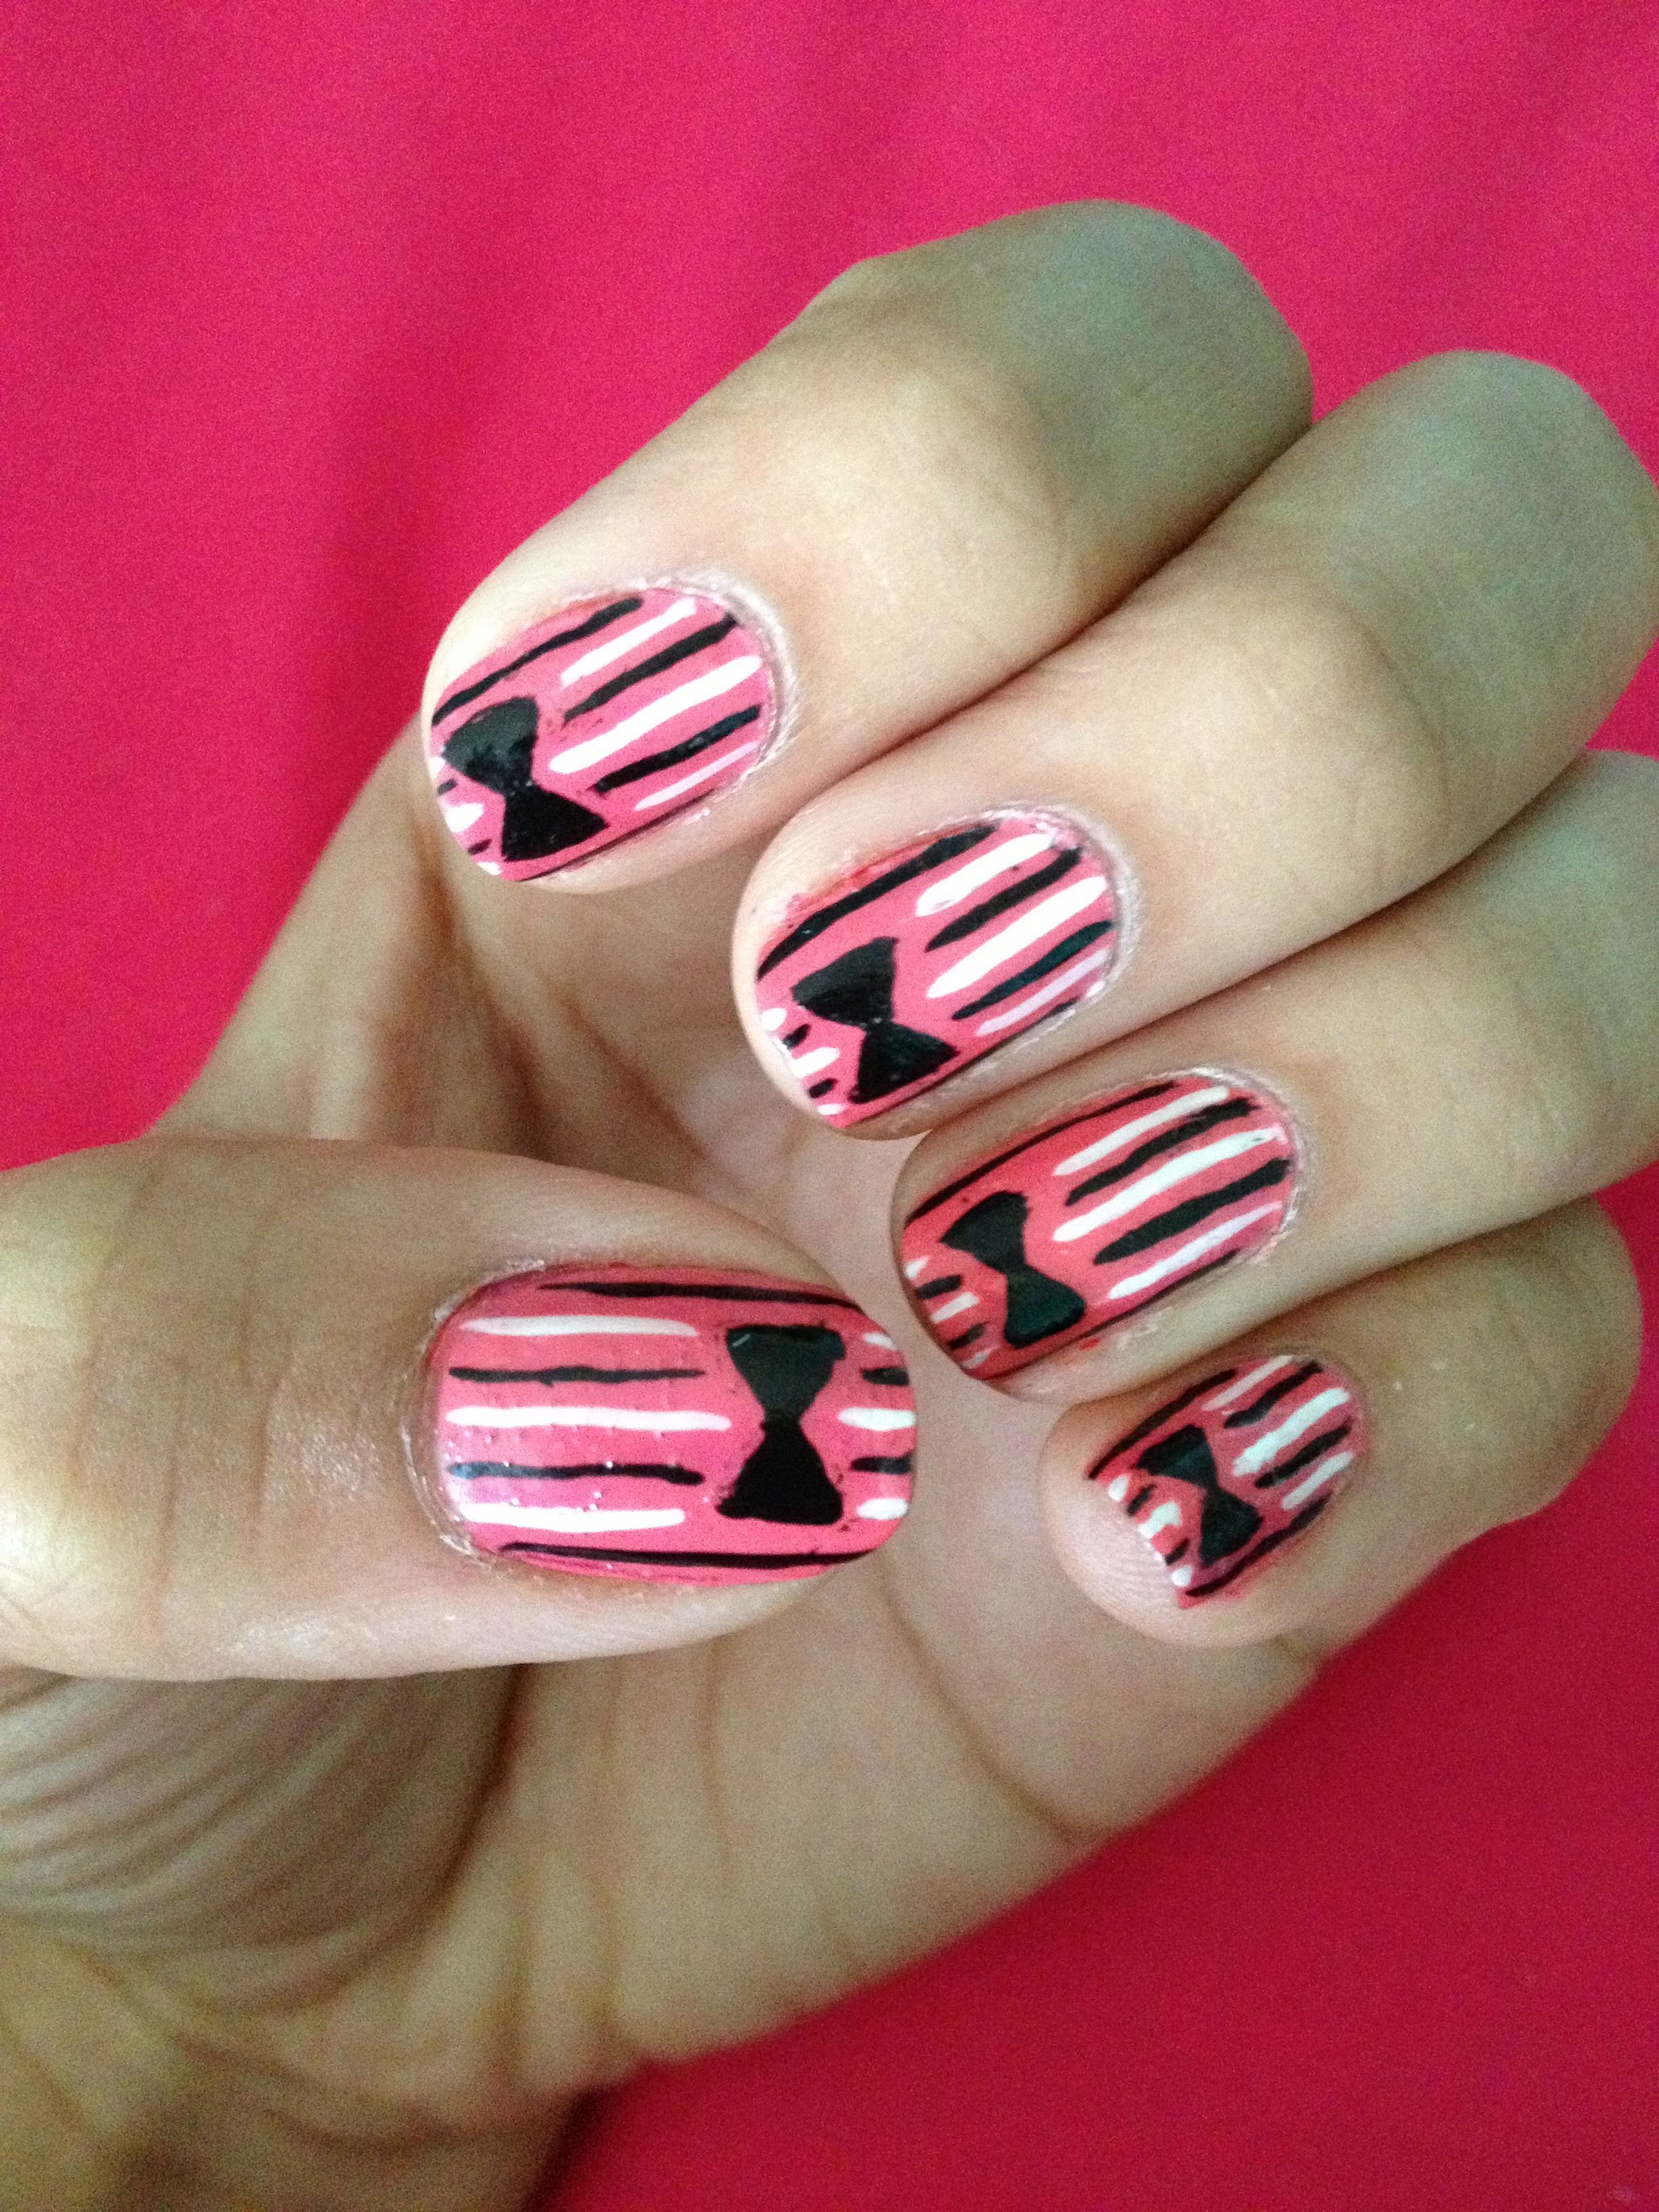 Classy Bow Tie Nail Art Easy To Create Using A Small Nail Art